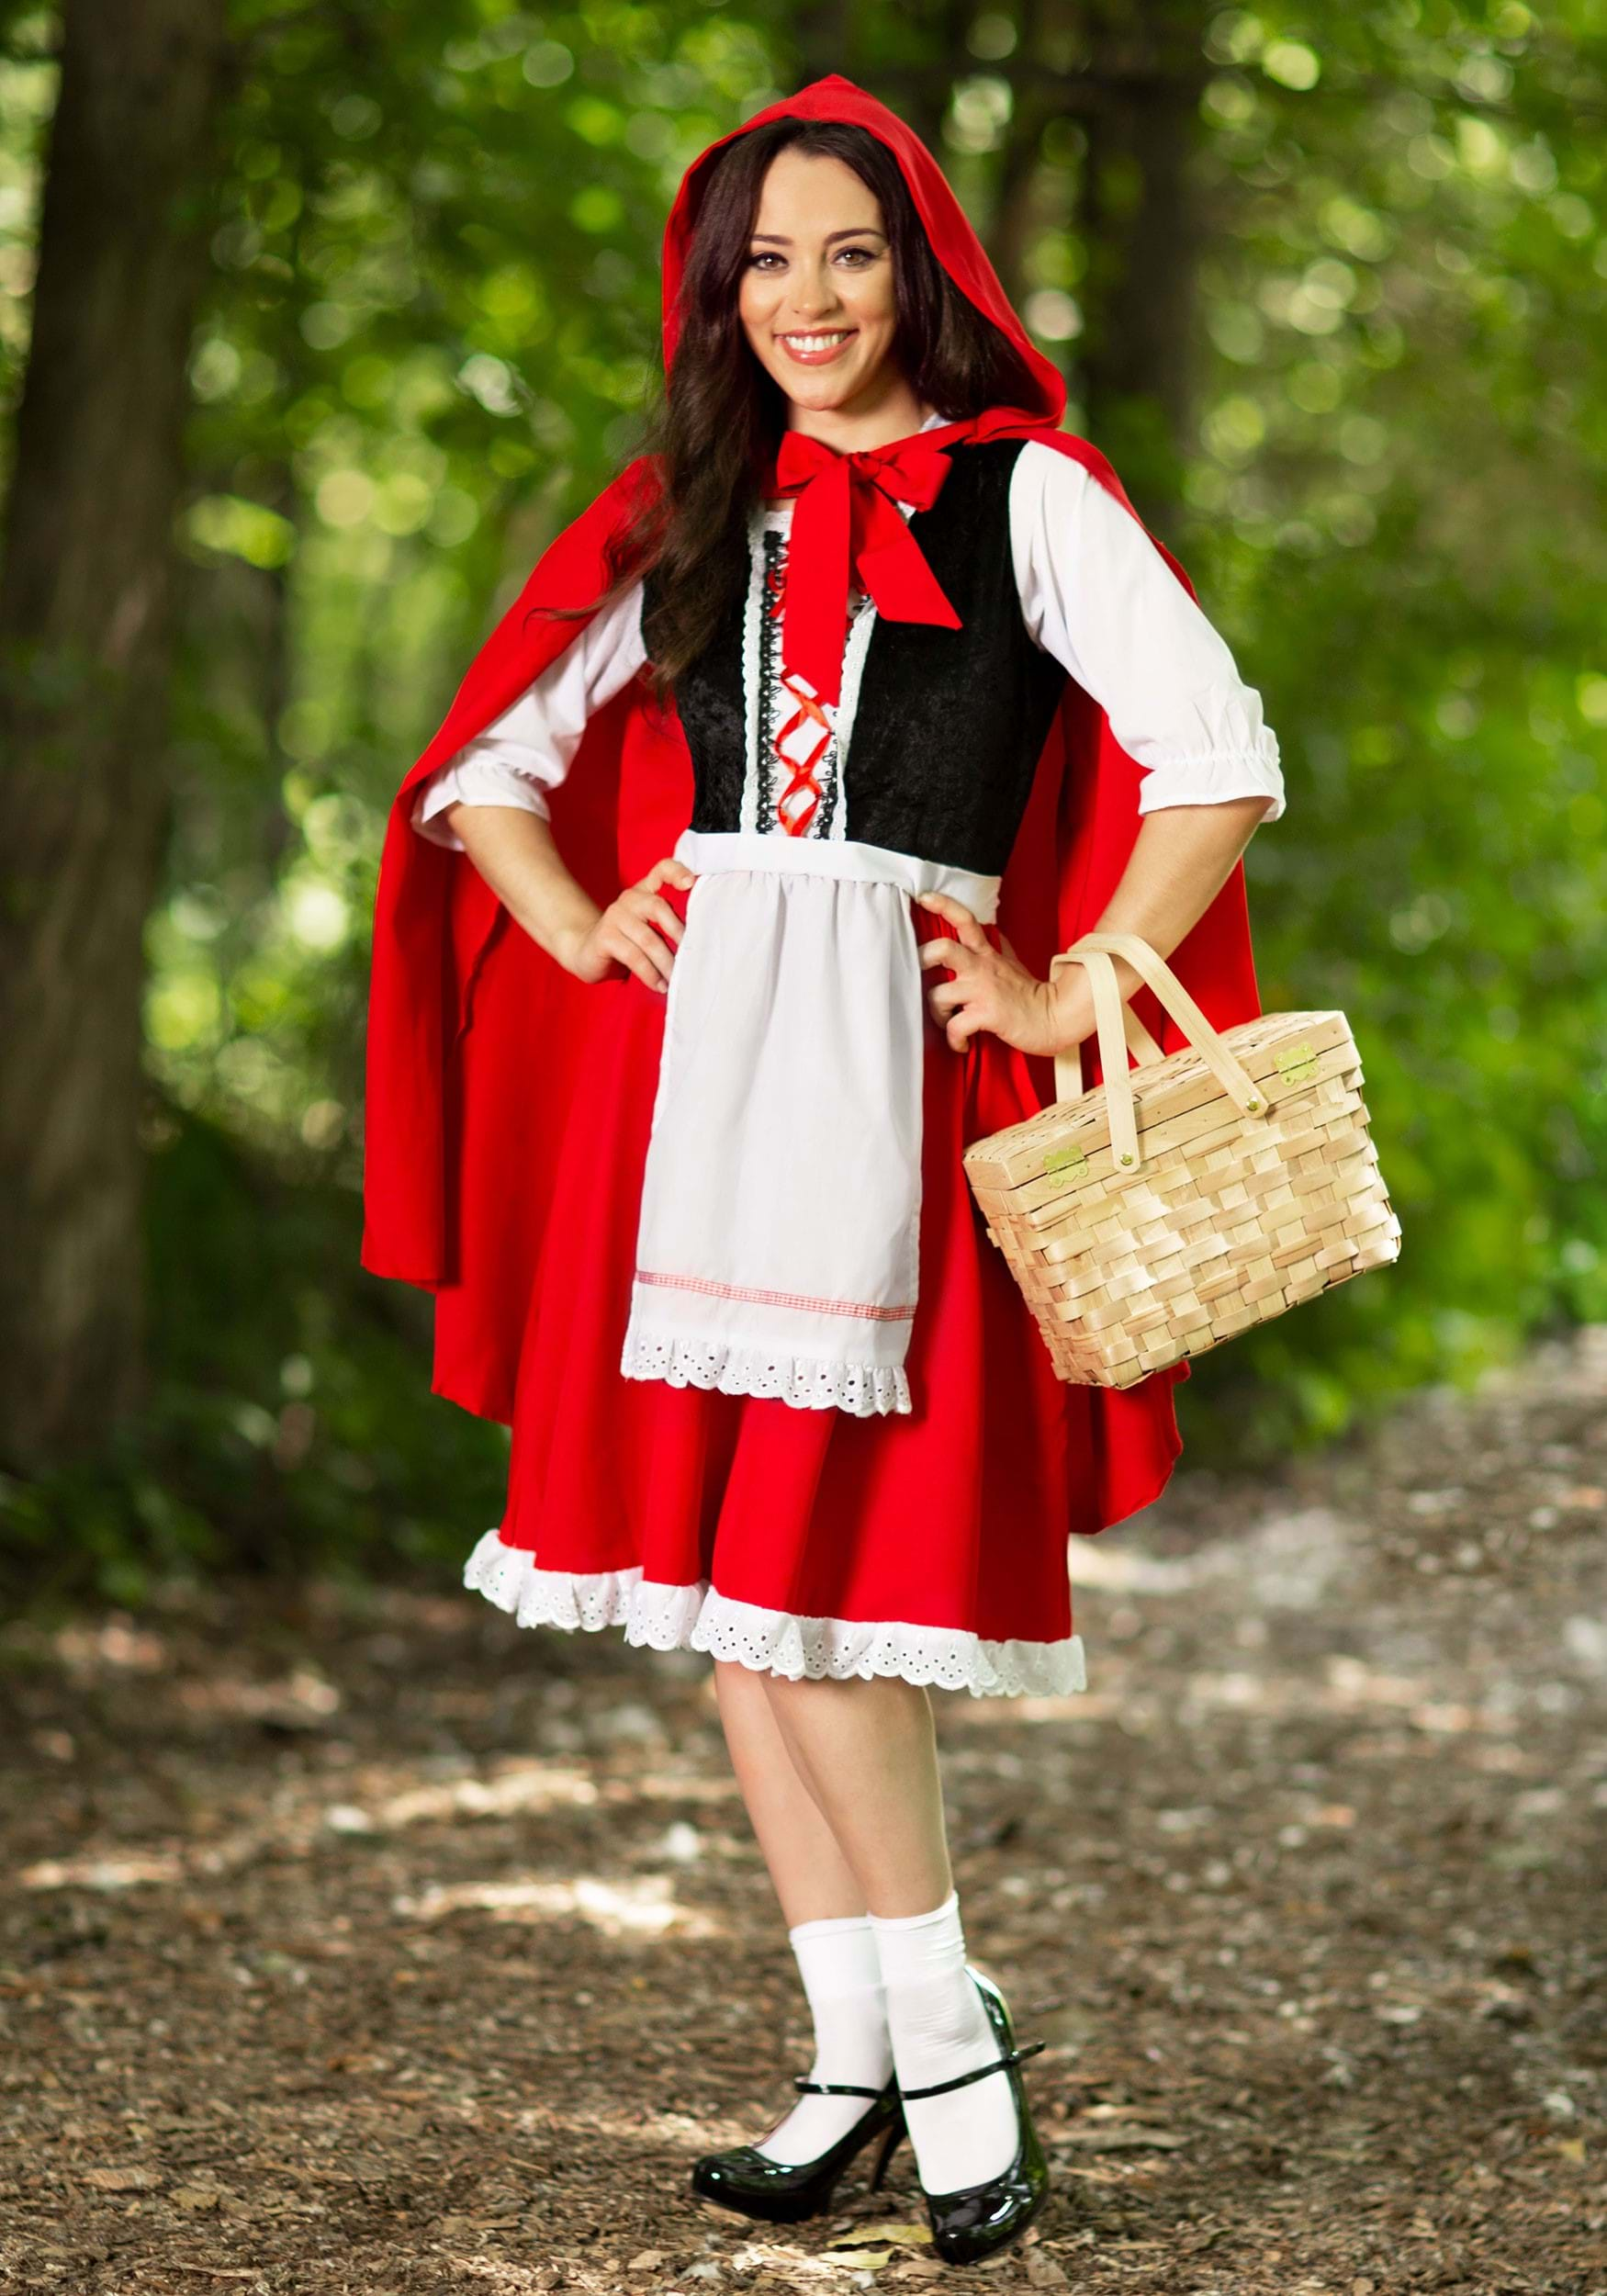 Adult Red Riding Hood Costume Little Red Riding Hood...